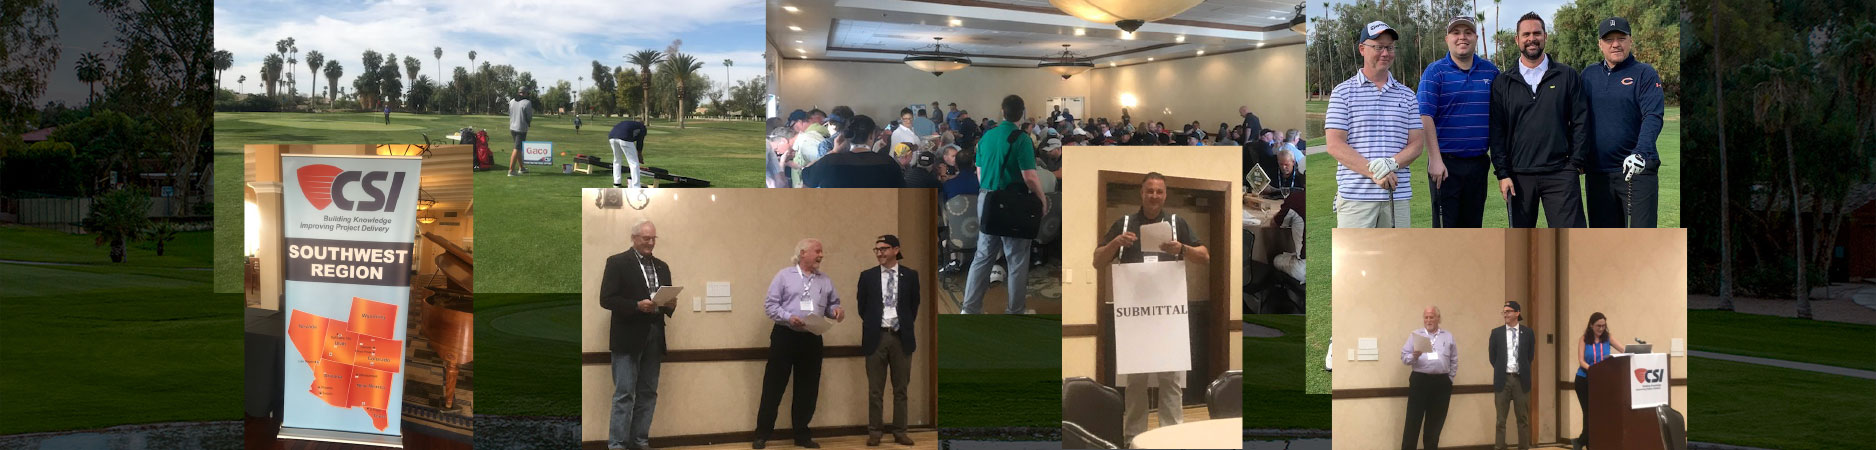 Phoenix Chapter CSI 25th Annual Golf Tournament Recap